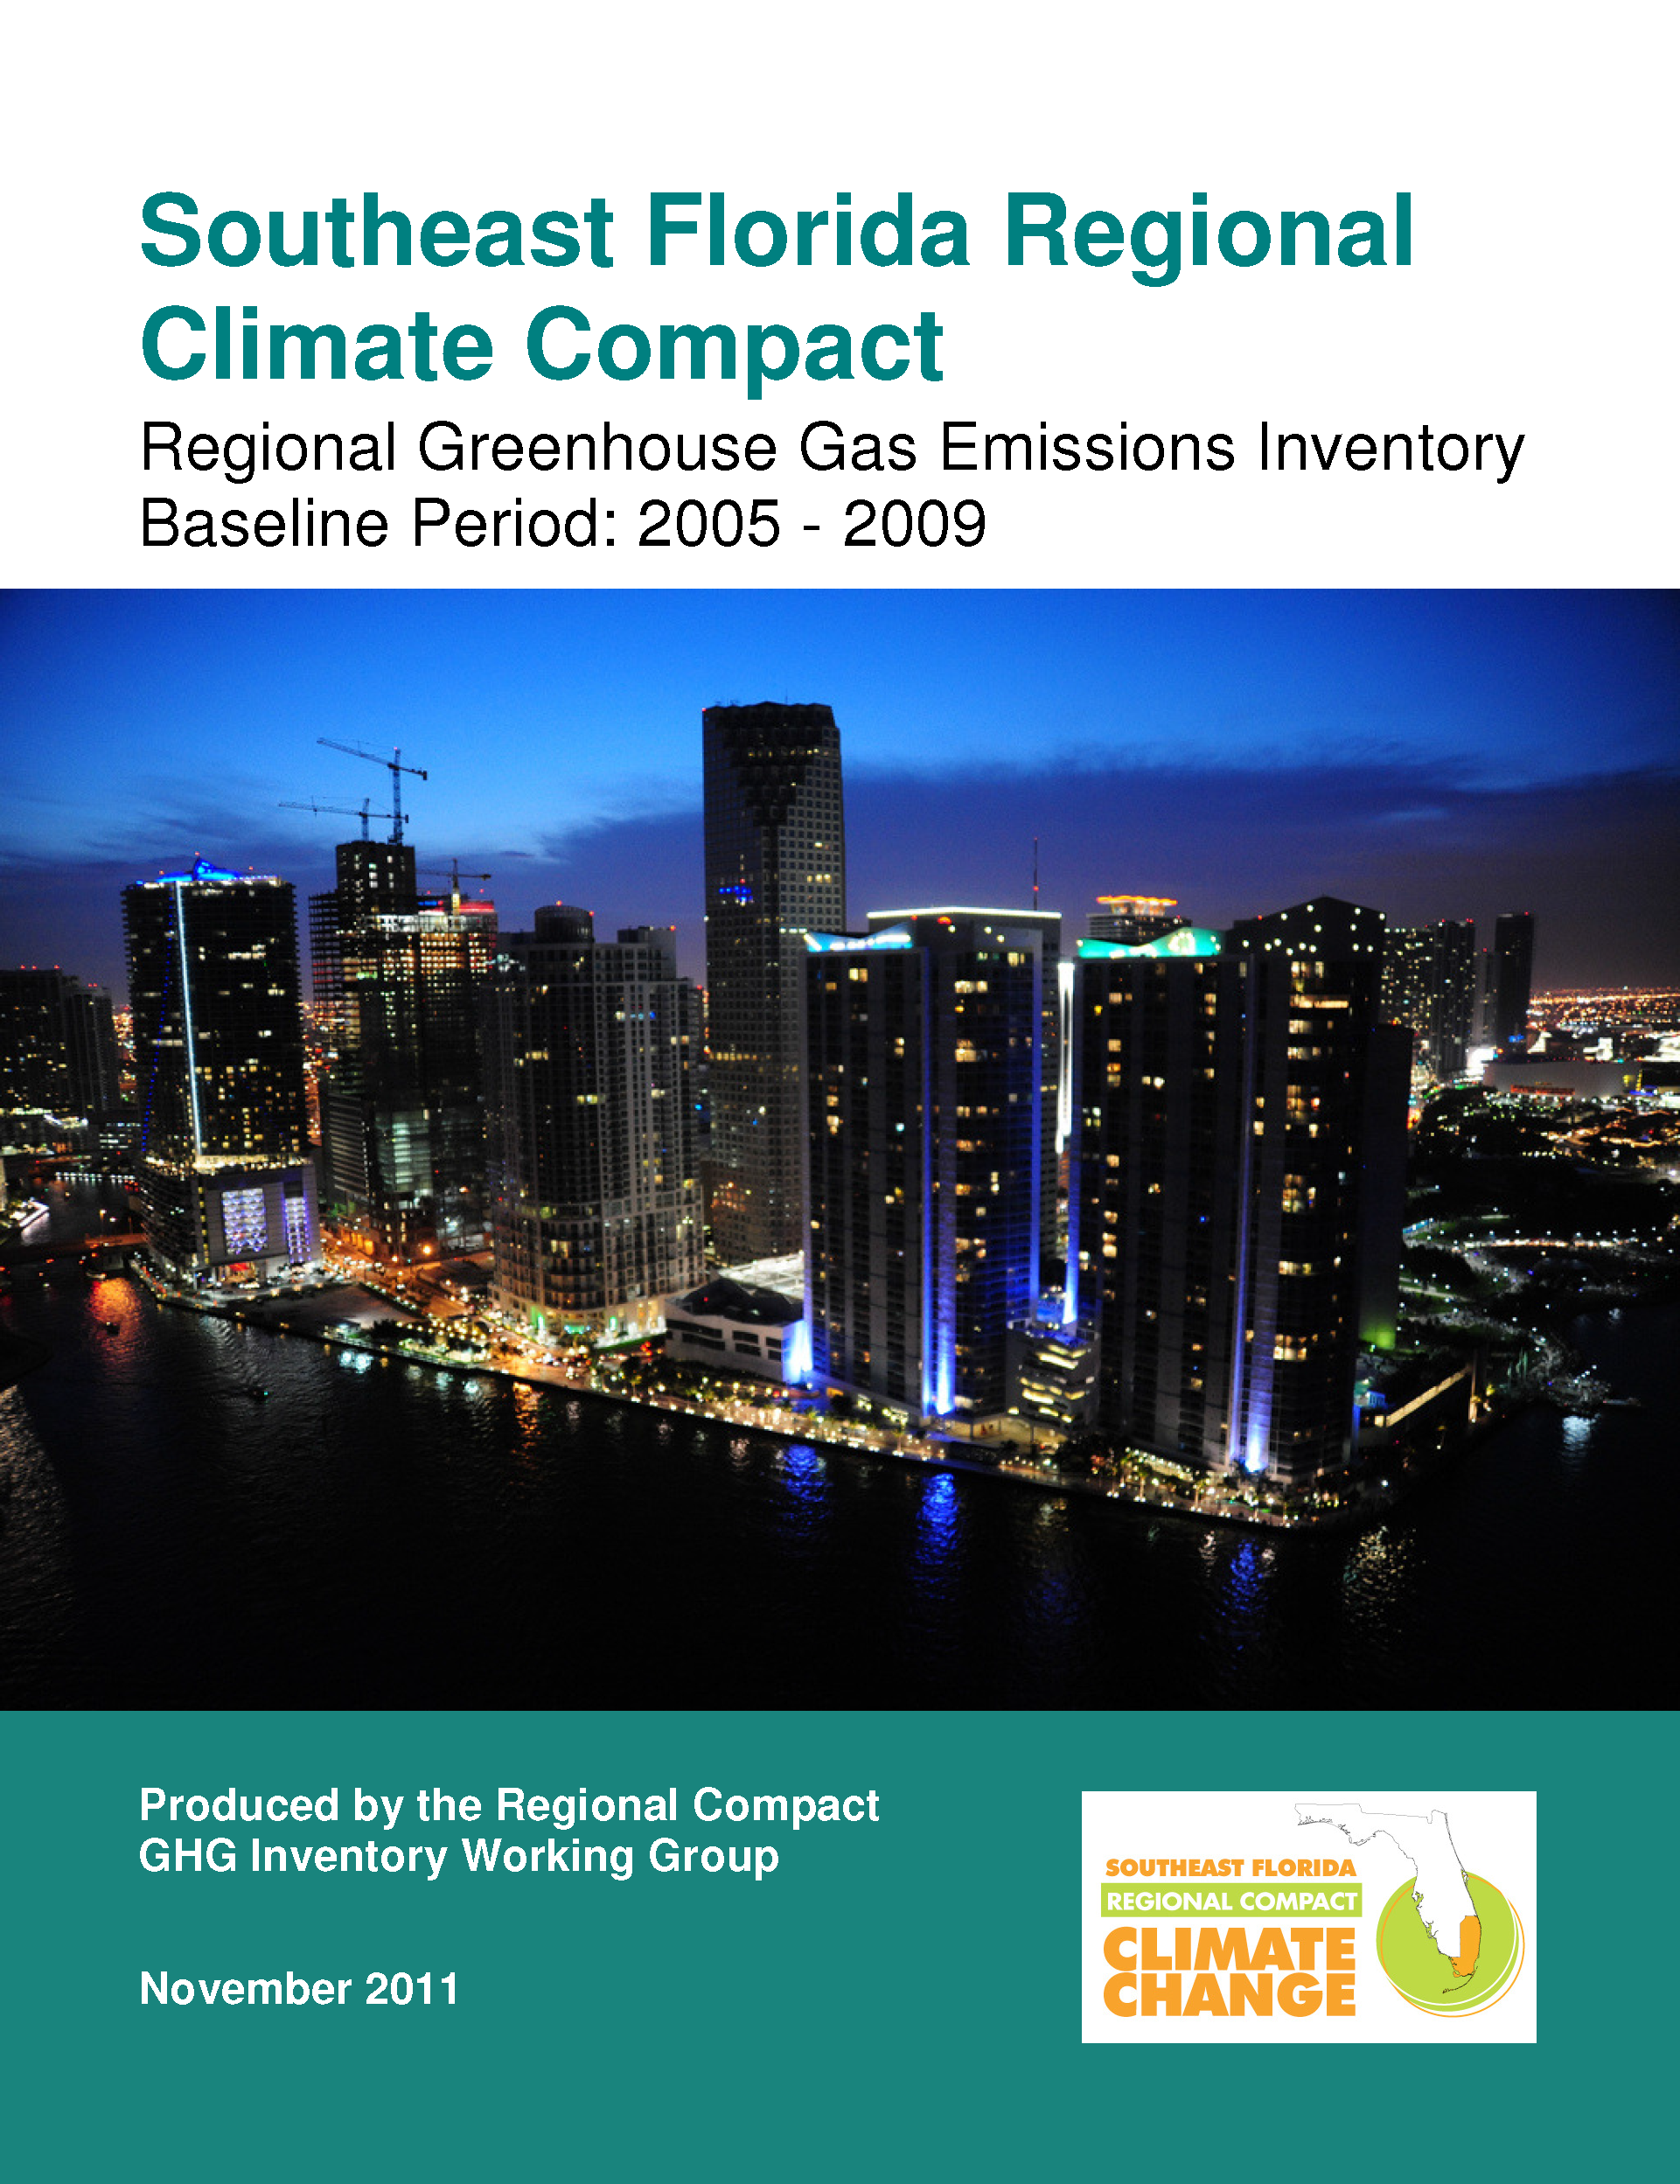 http://www.southeastfloridaclimatecompact.org//wp-content/uploads/2014/09/ghg-inventory.png